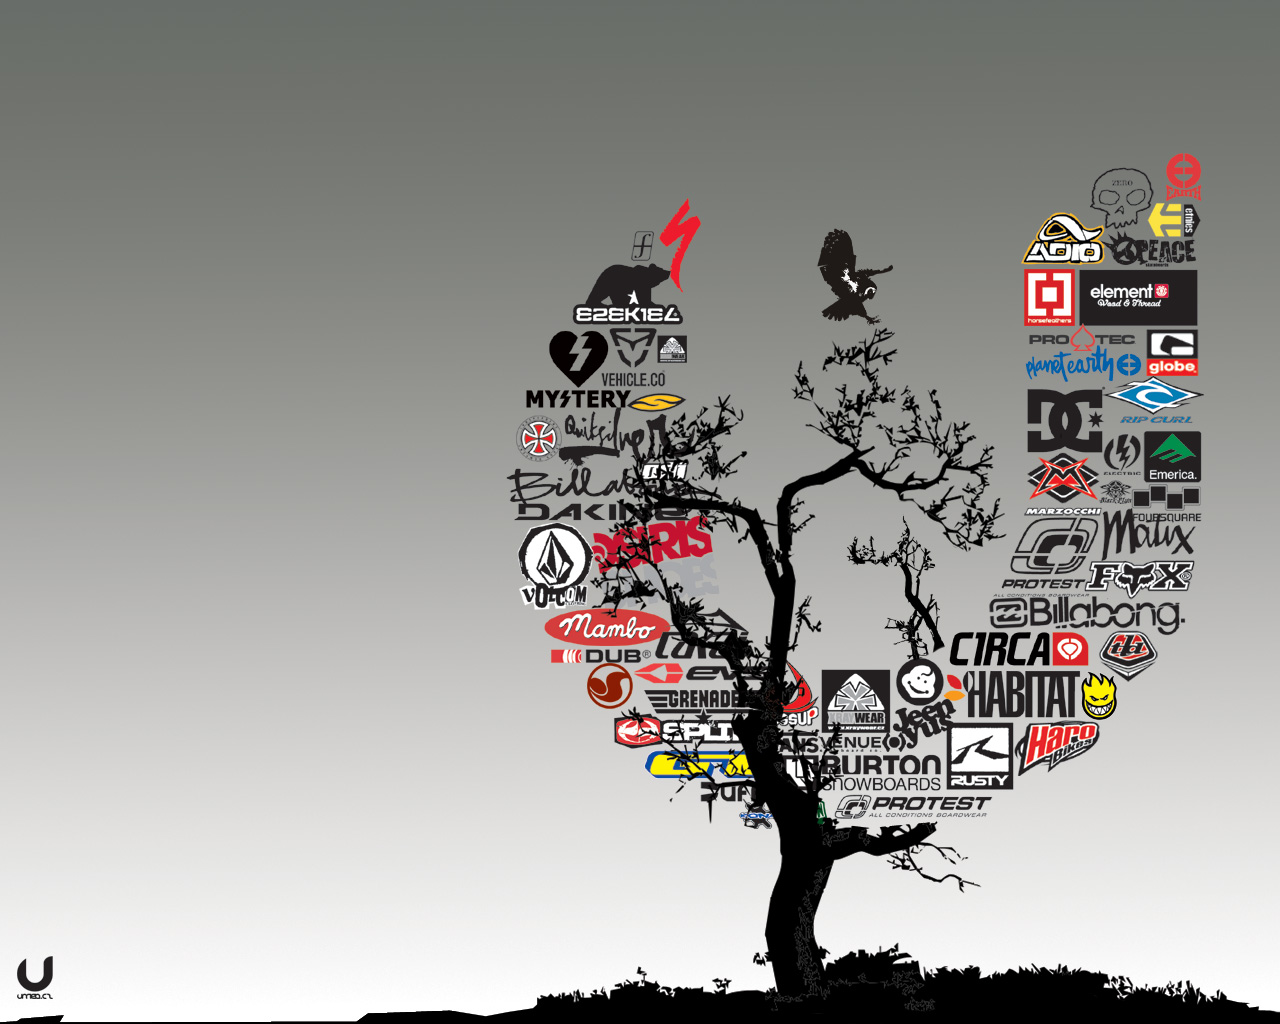 December 9, 2007 in design, graphic, umeaboi, vector, wallpaper | Tags: